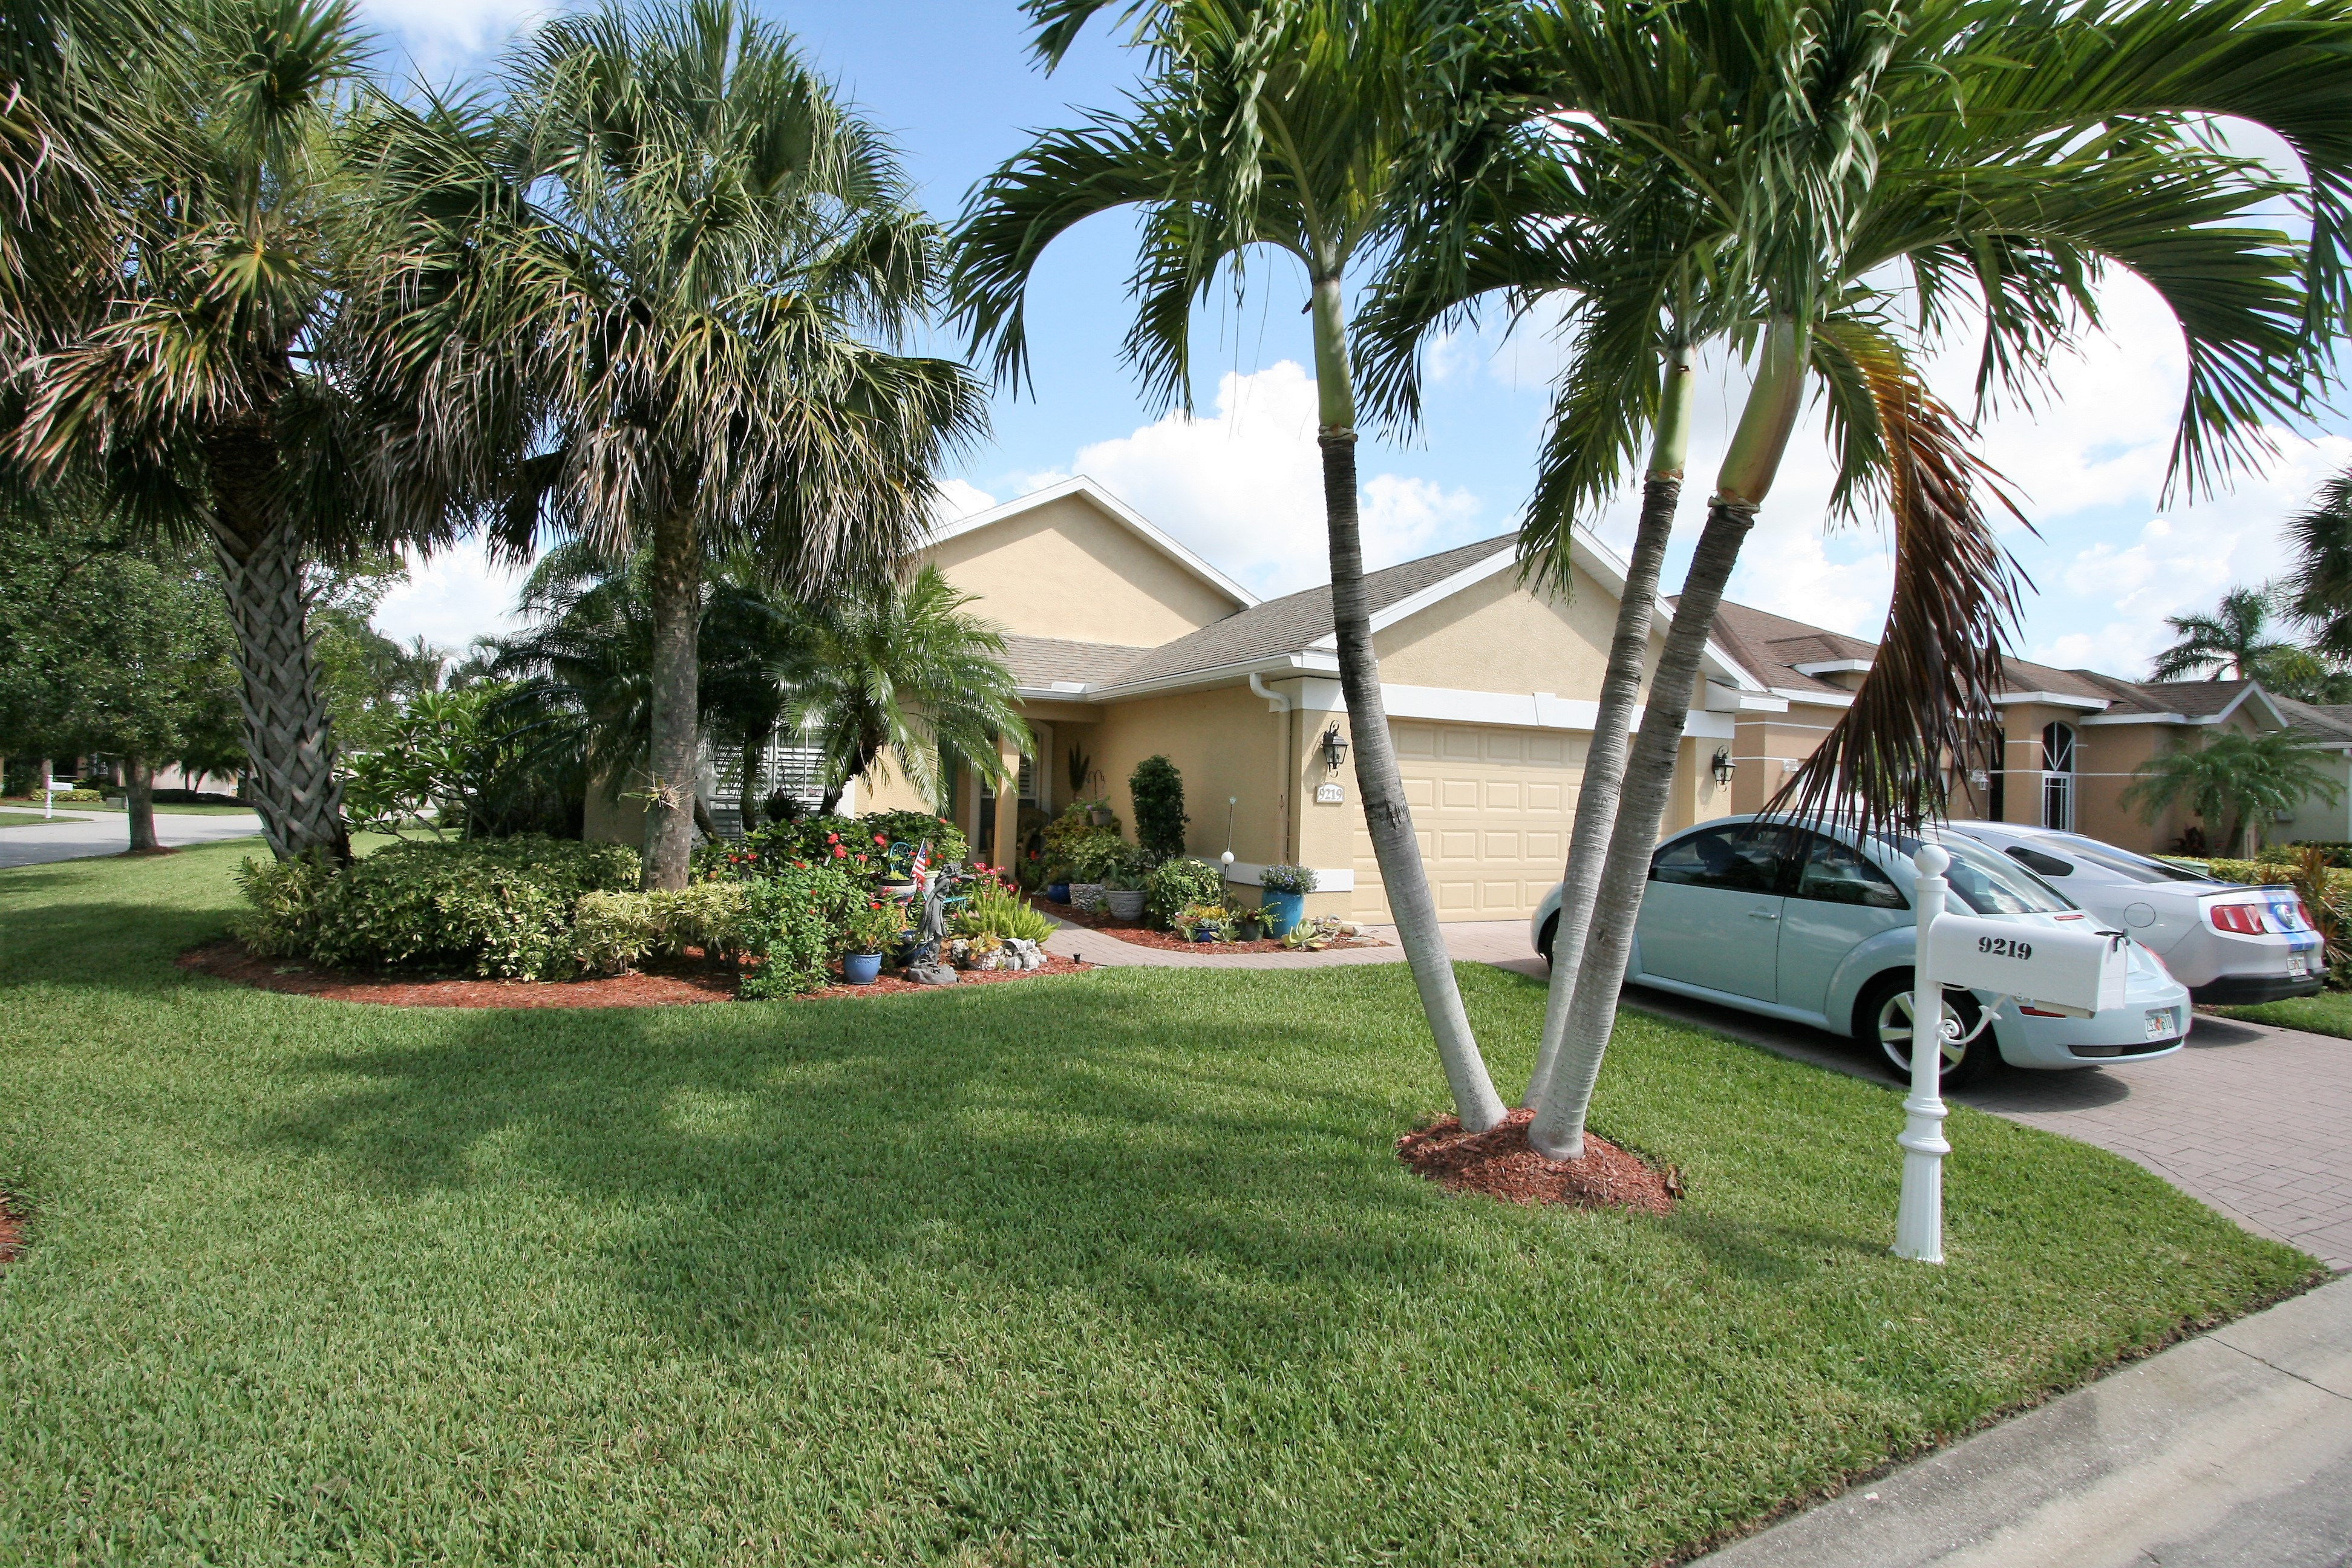 9219 PALM ISLAND CIR NORTH FORT MYERS FL 33903